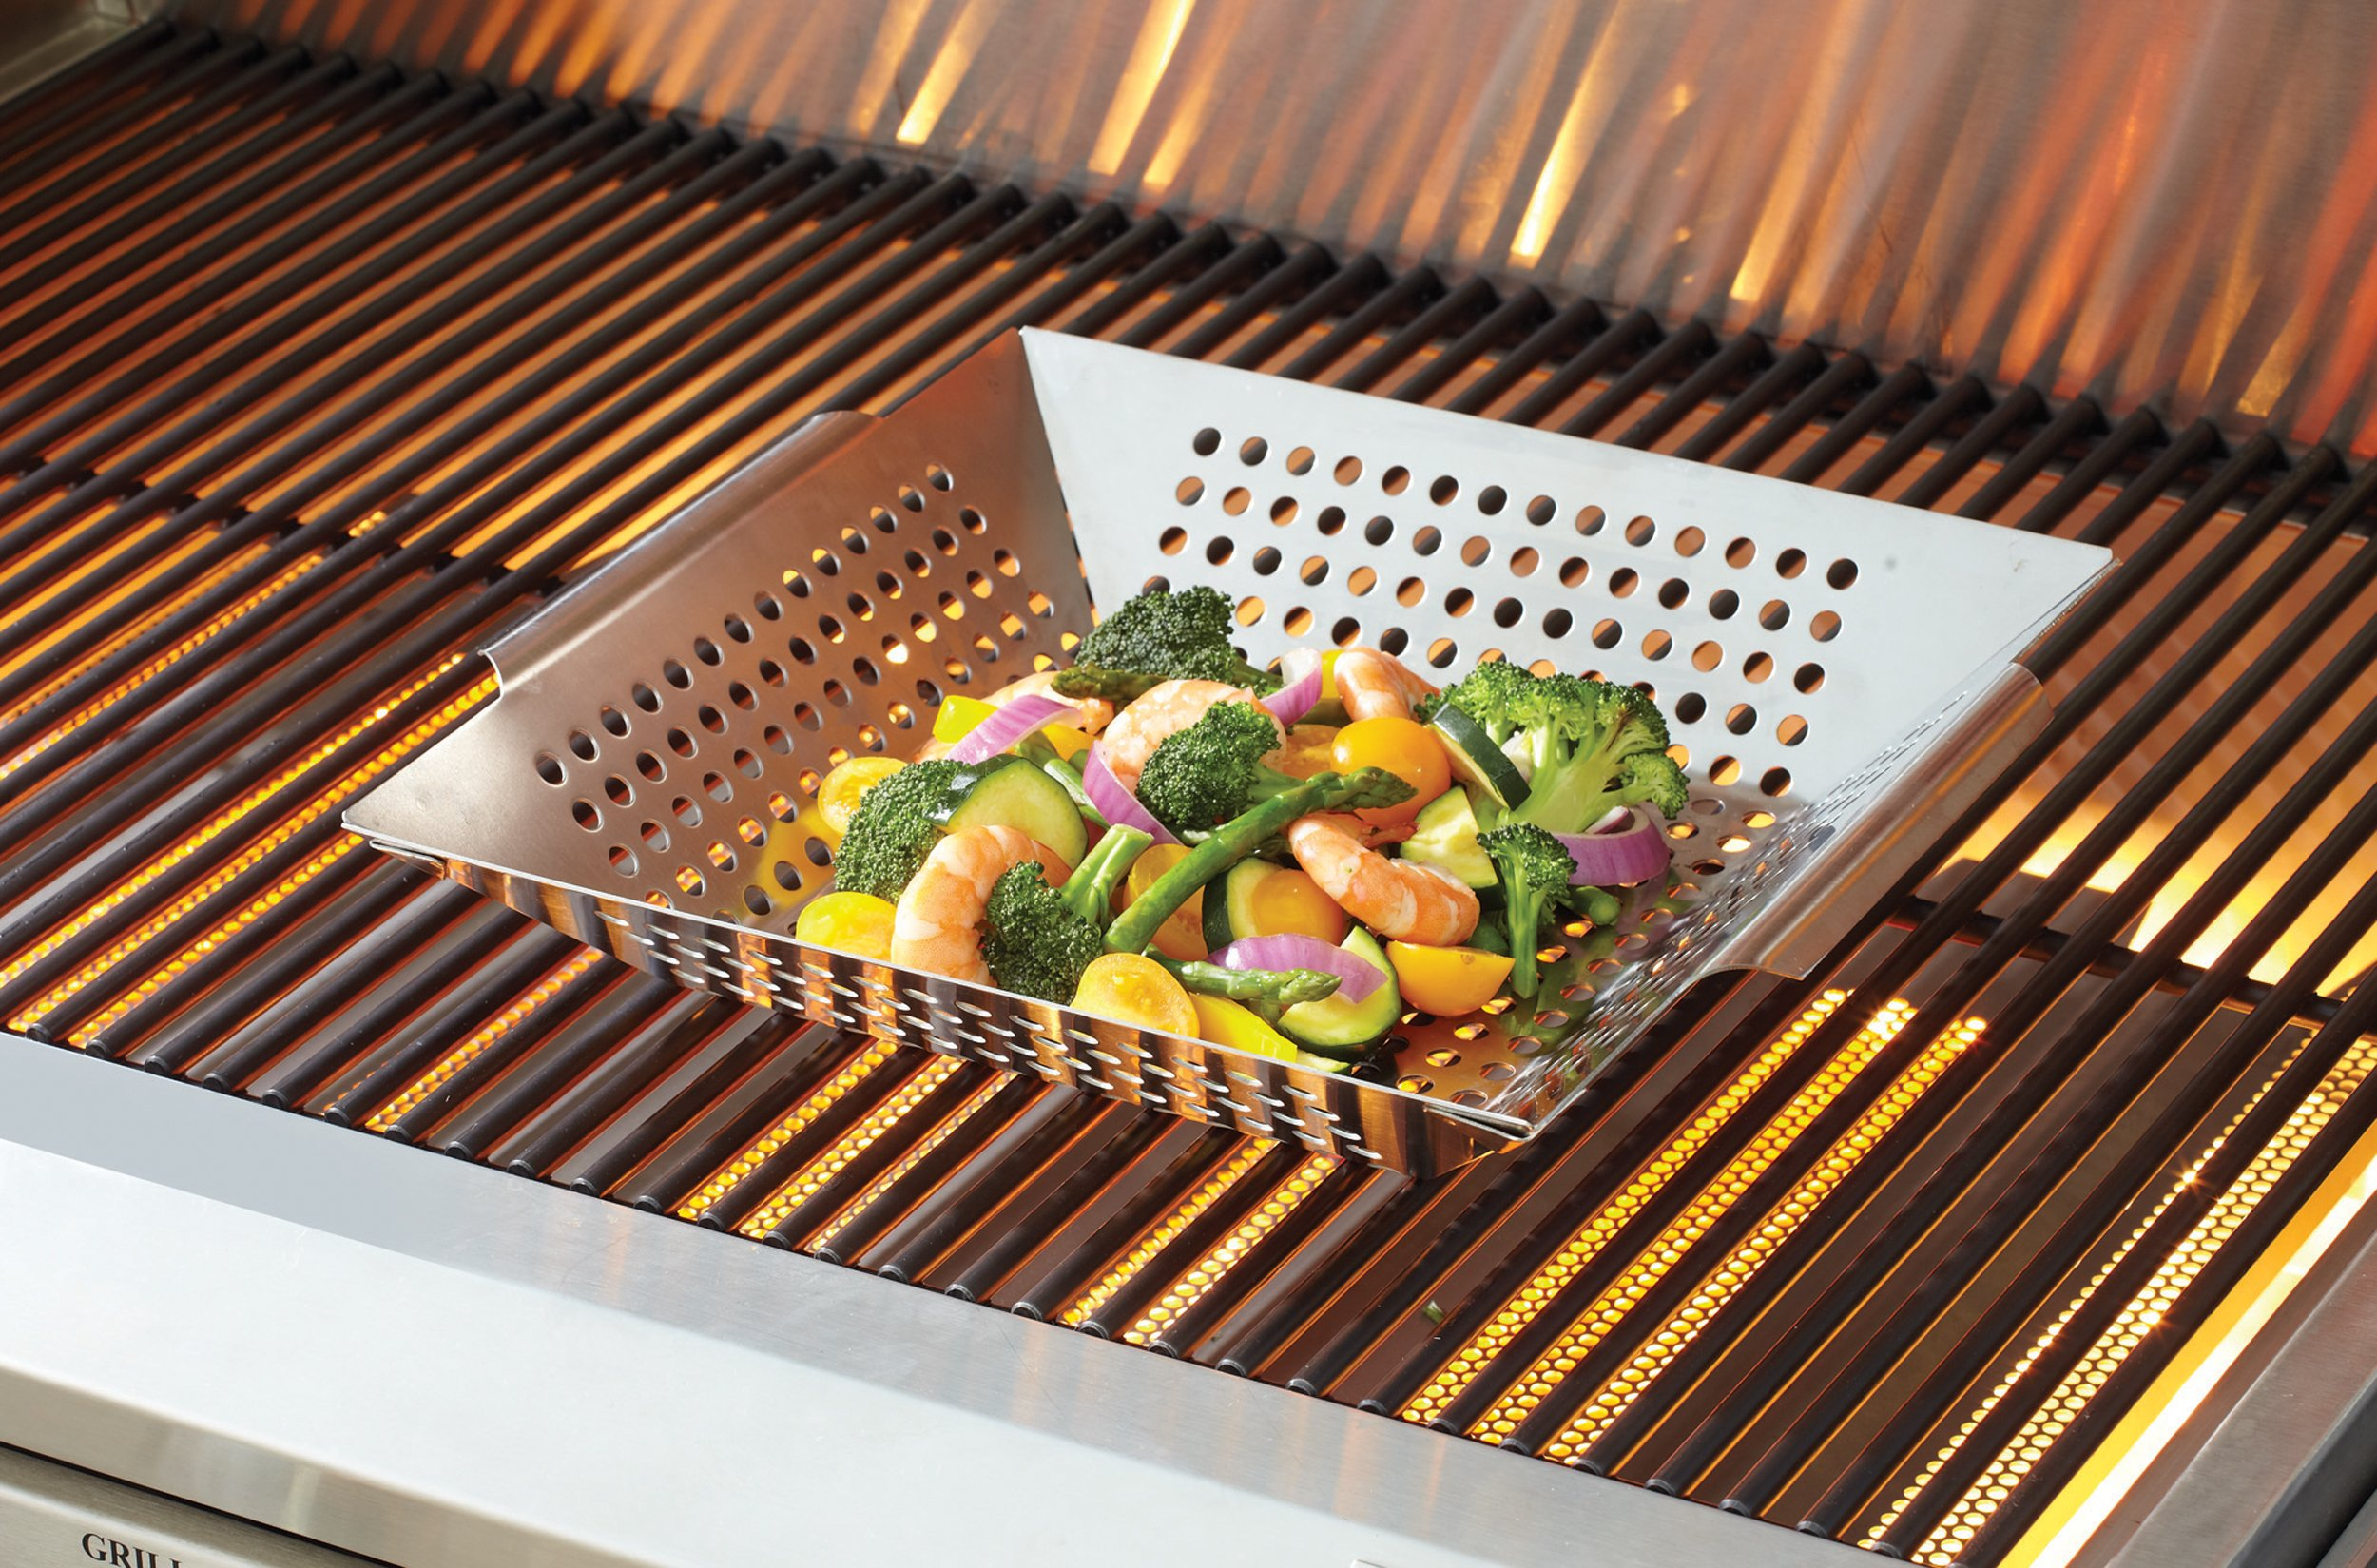 Mr. Bar-B-Q Platinum Prestige Stainless Steel Vegetable Grill Basket - Perfect for Cooking Crispy Vegetables, Fish, and Meats on the Grill or BBQ - Built in Handles - Great for Cookouts and Camping